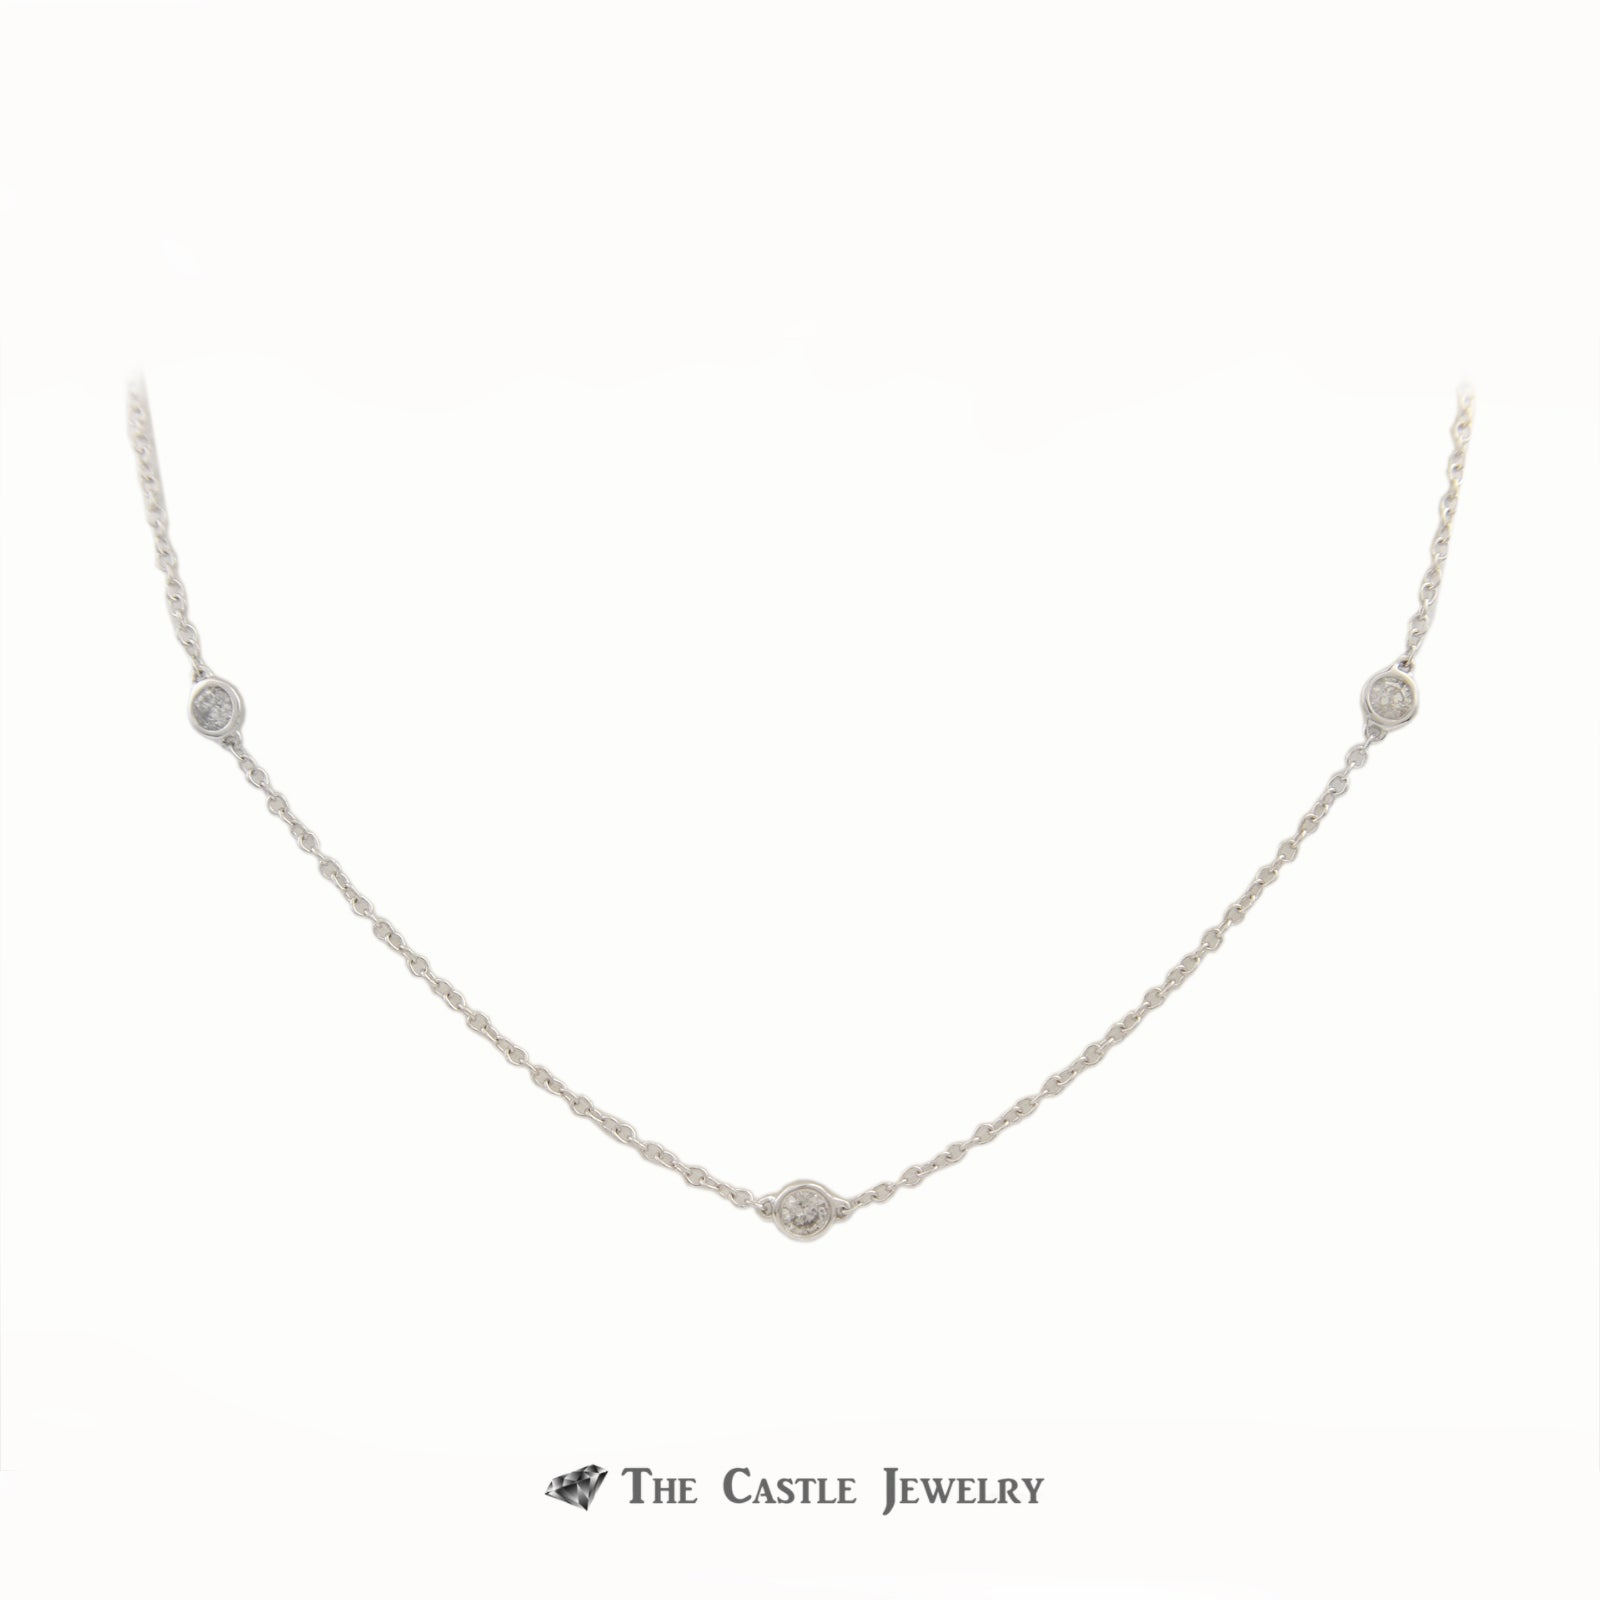 1/2cttw Diamond Station Necklace w/ 10 Round Diamonds 18 Inches in White Gold-1